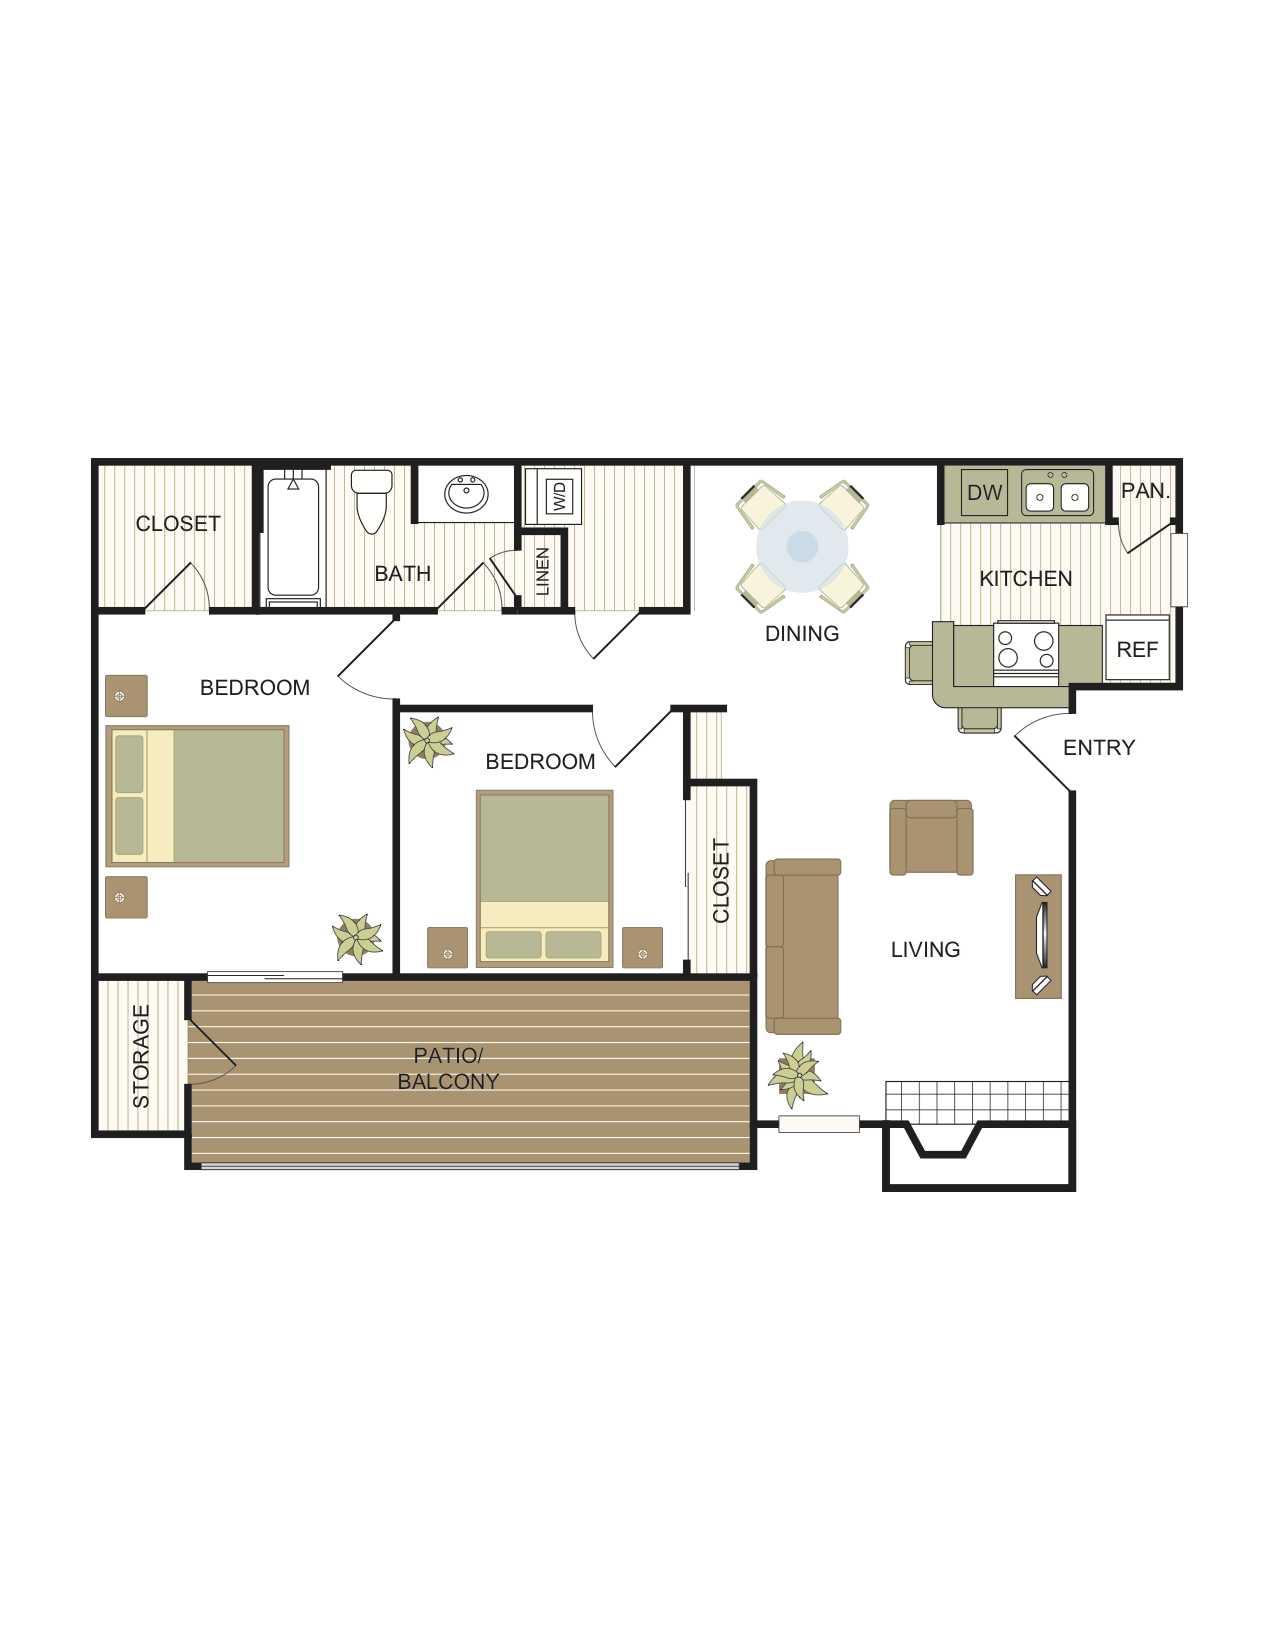 2 Bedrooms | 1 Bath Floor Plan 3